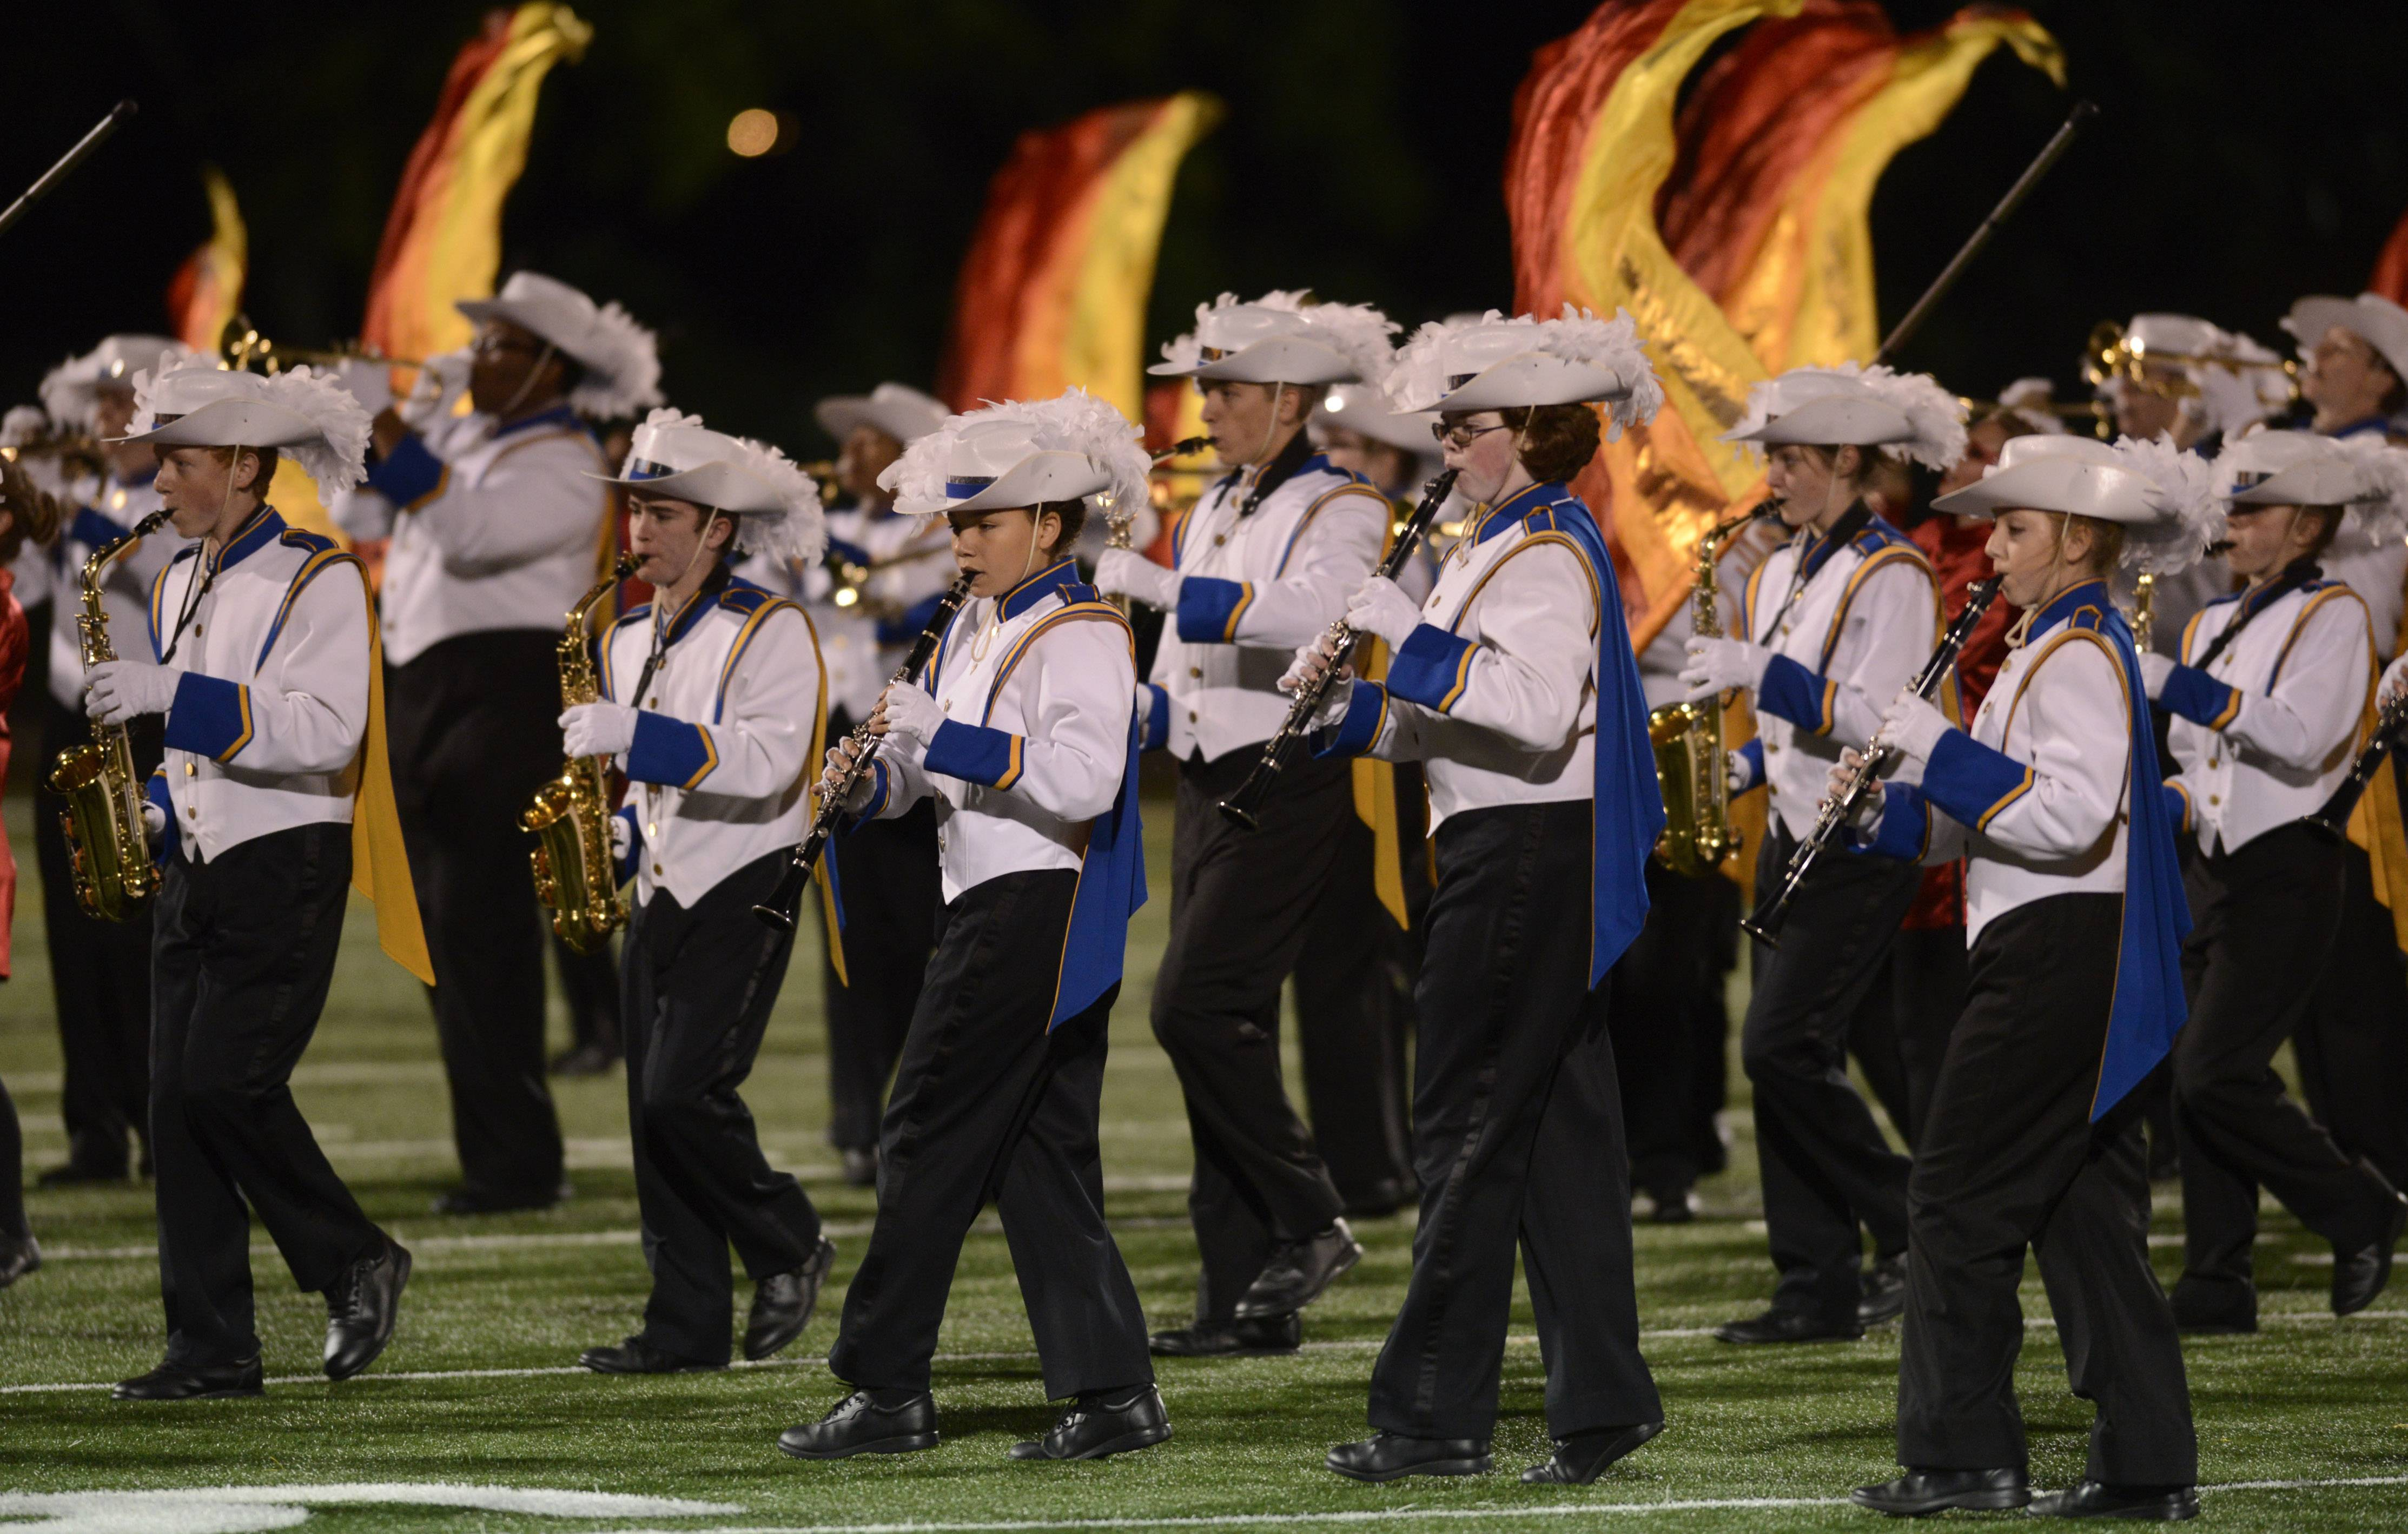 The Warren High School Marching Band performs Saturday during the annual Chicagoland Marching Band Festival at Wheeling High School .